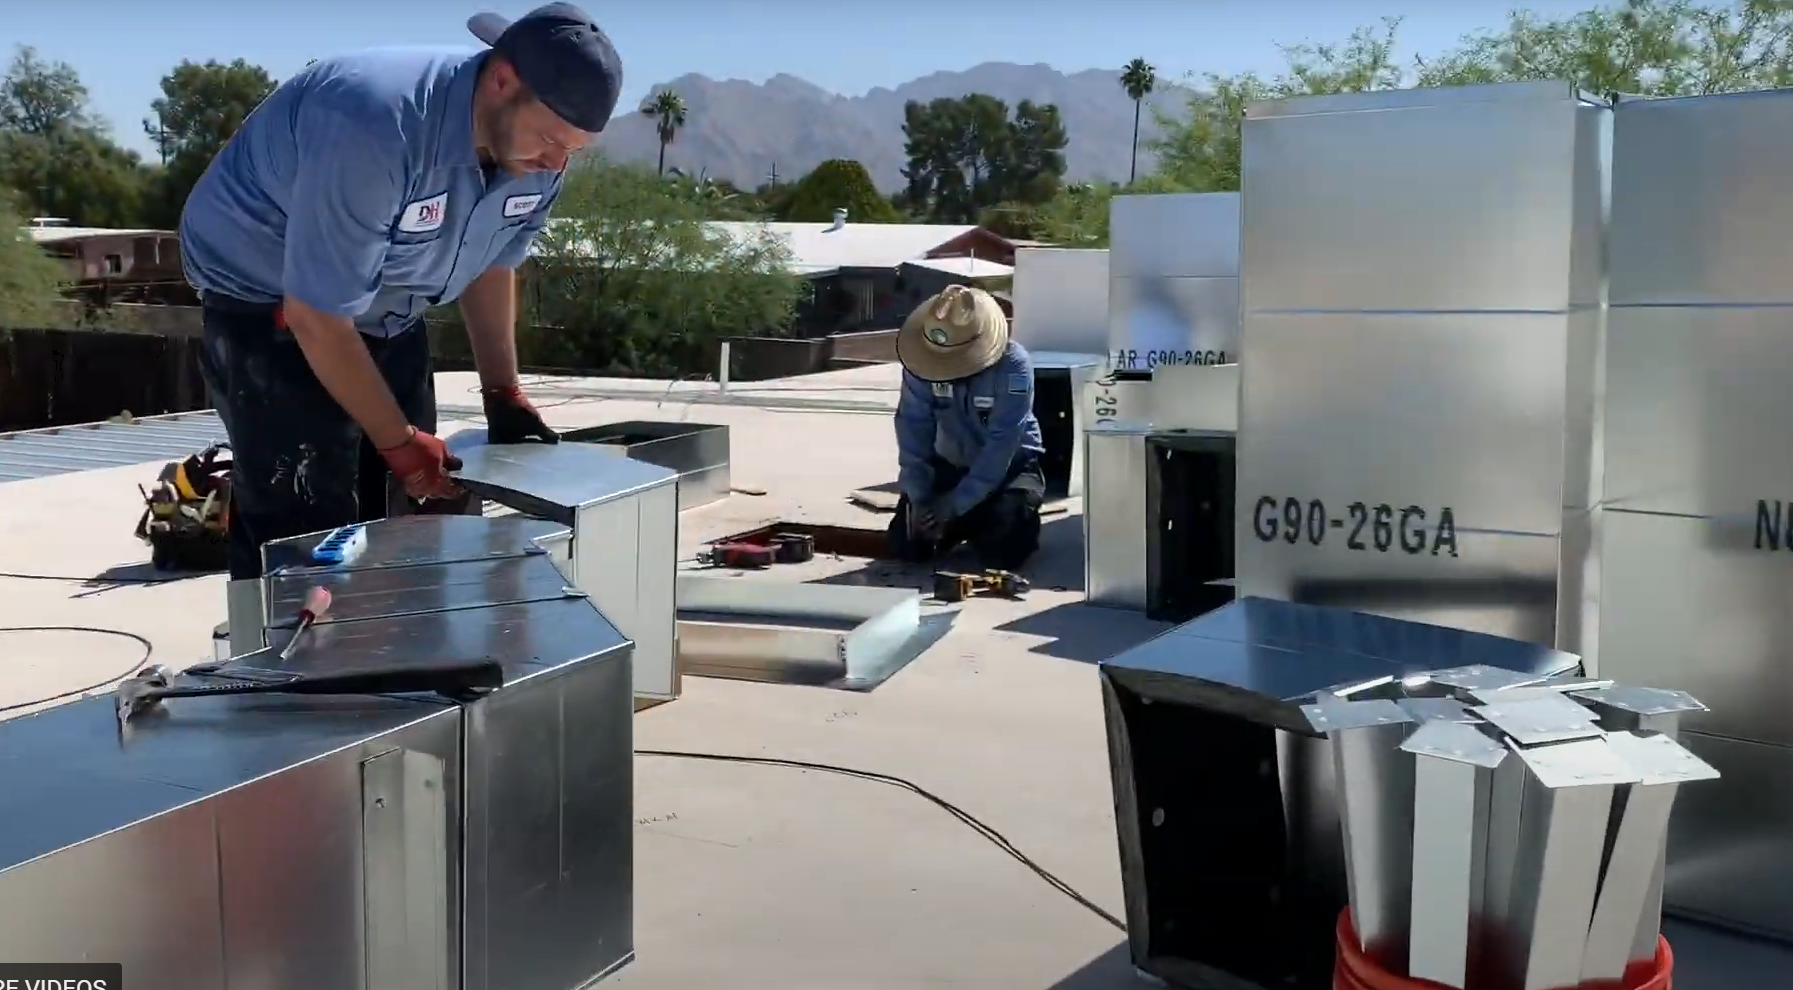 2 HVAC technicians proceeding with an air conditioning installation on a roof in Casas Adobes